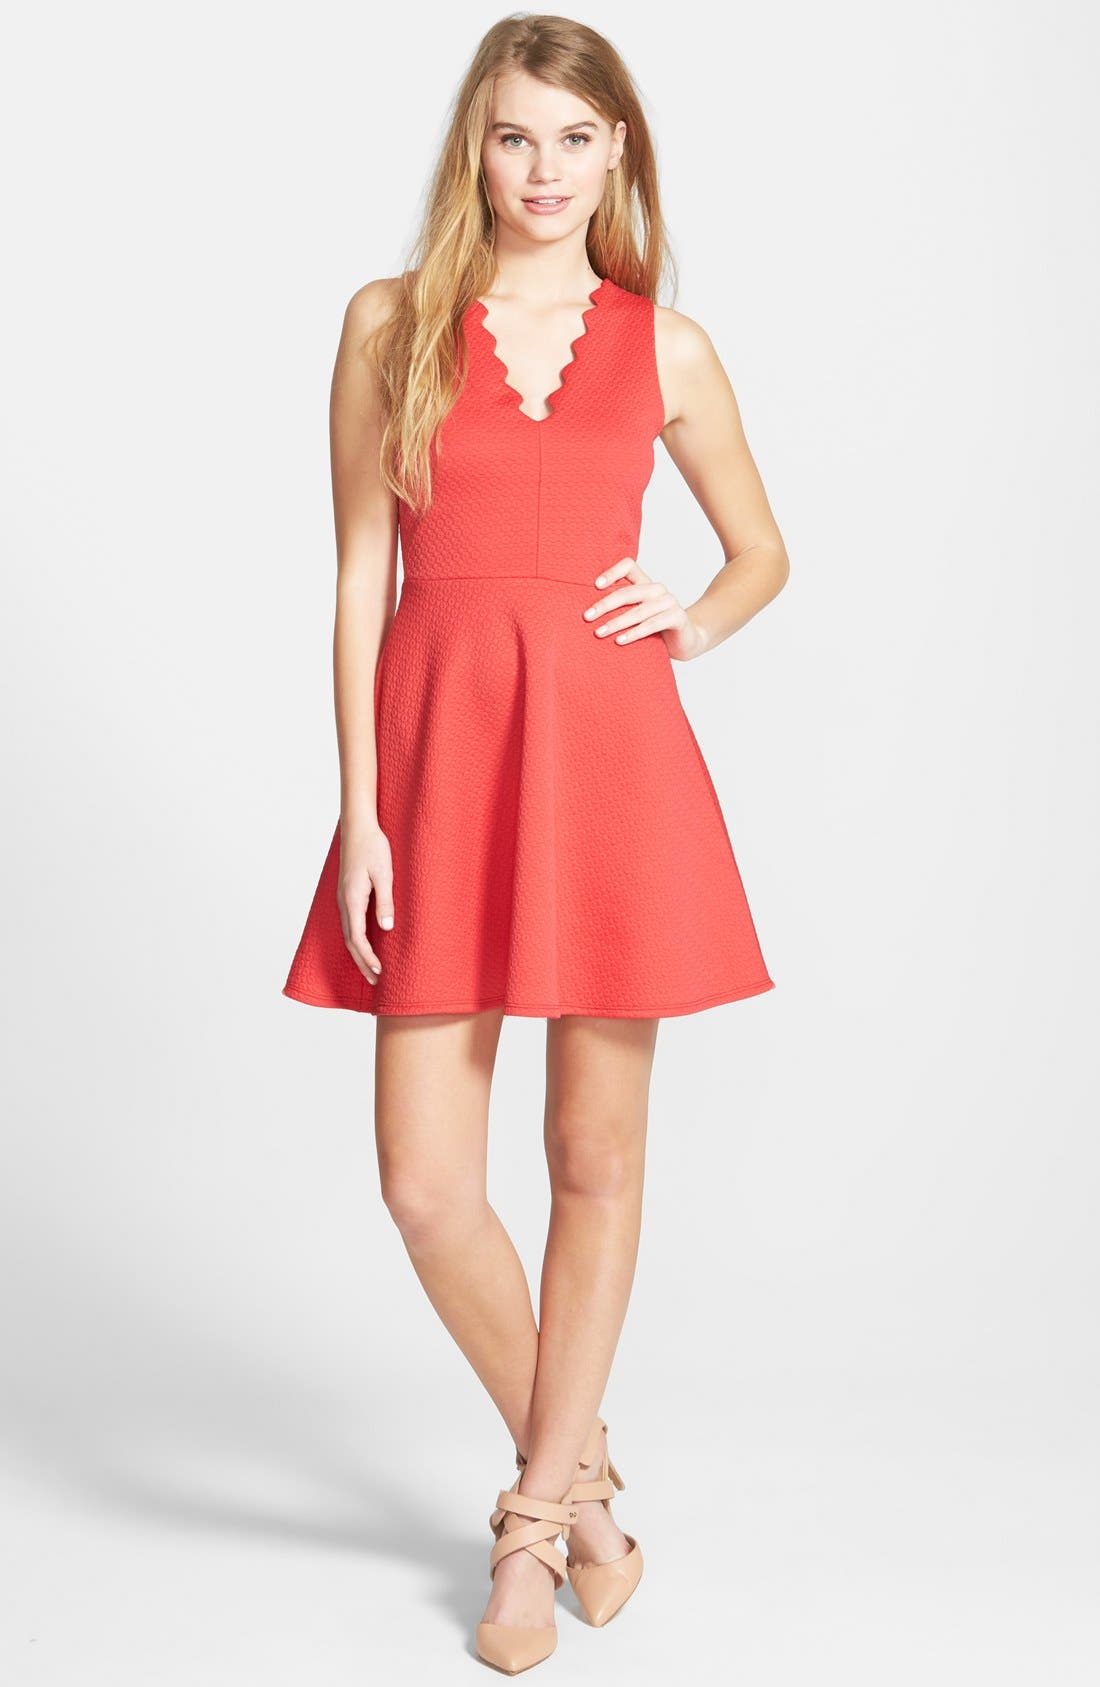 Main Image - dee elle Scallop Textured Skater Dress